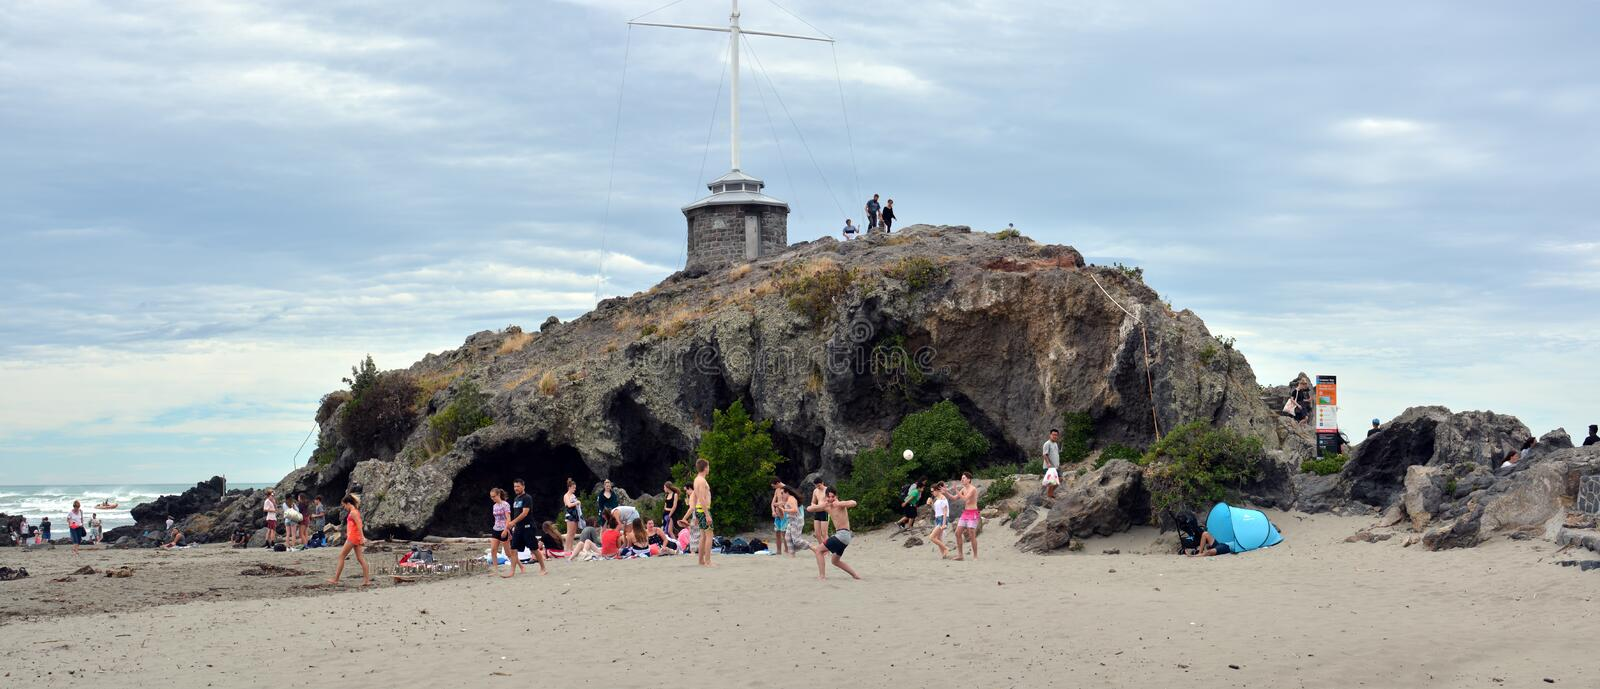 People playing Soccer on the Beach at Cave Rock, Christchurch royalty free stock photography